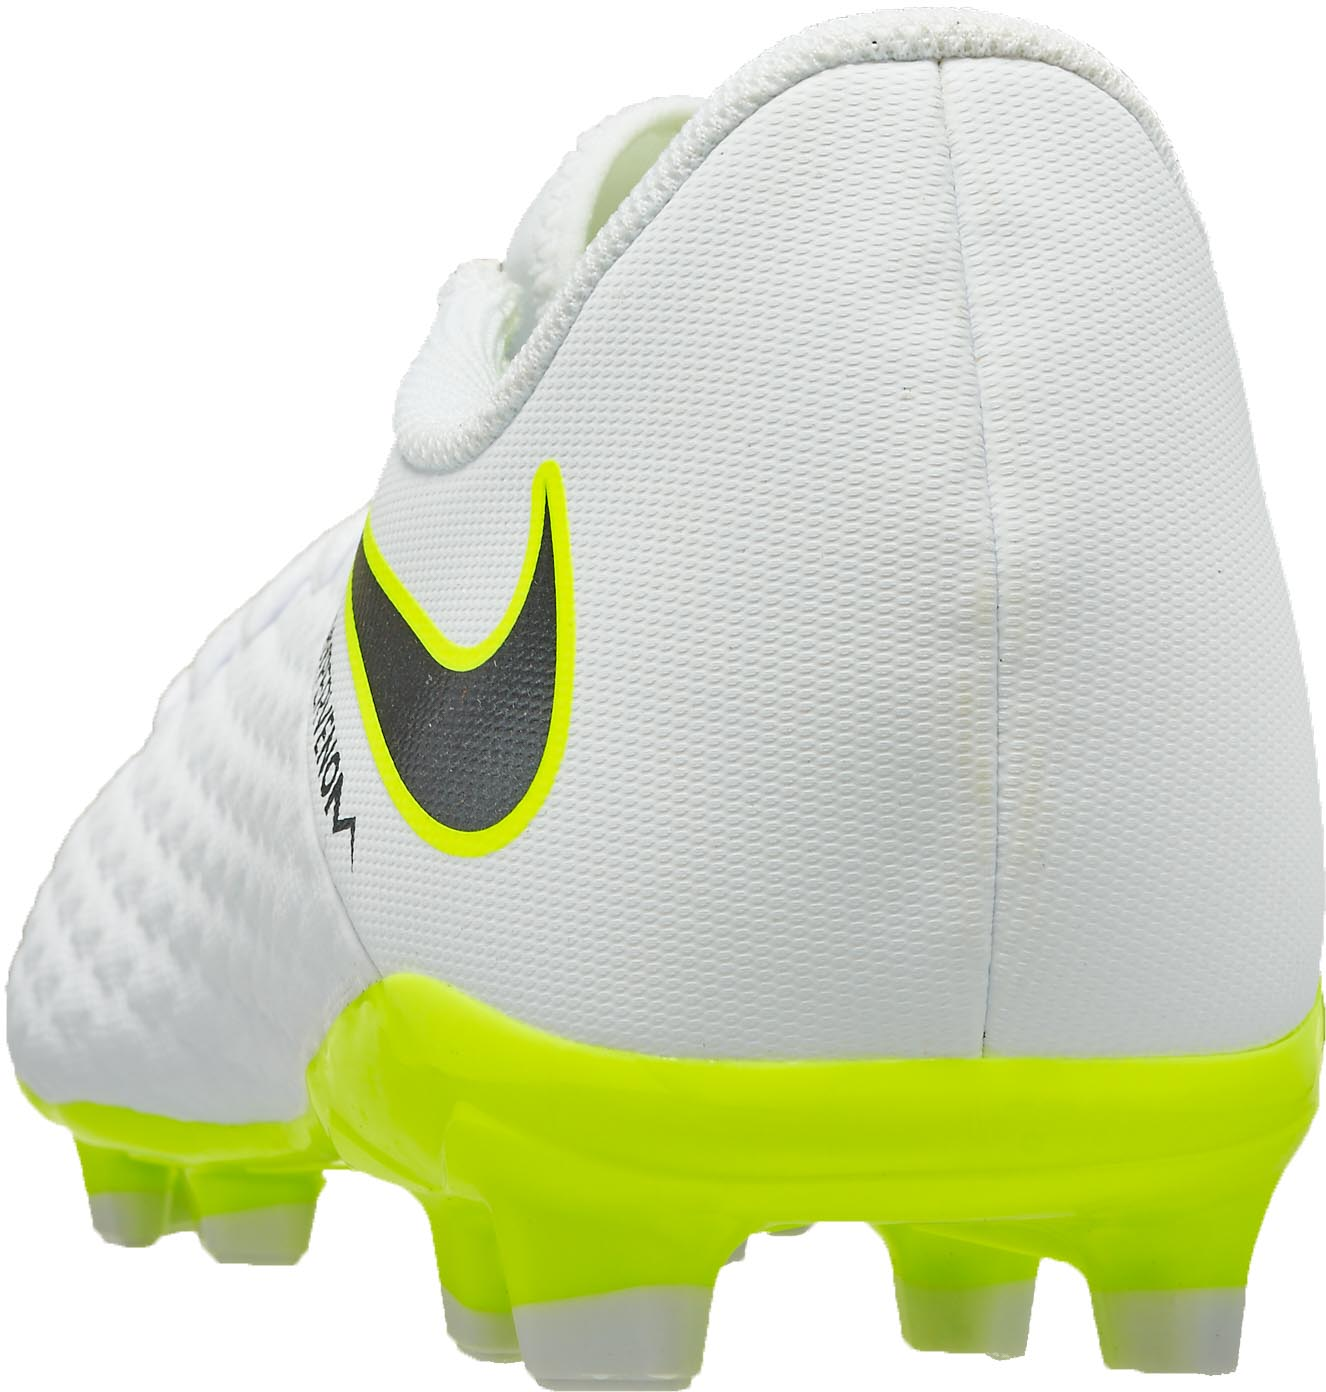 save off ace65 b3ce2 Nike Hypervenom Phantom 3 Academy FG - Youth - White/Volt - SoccerPro